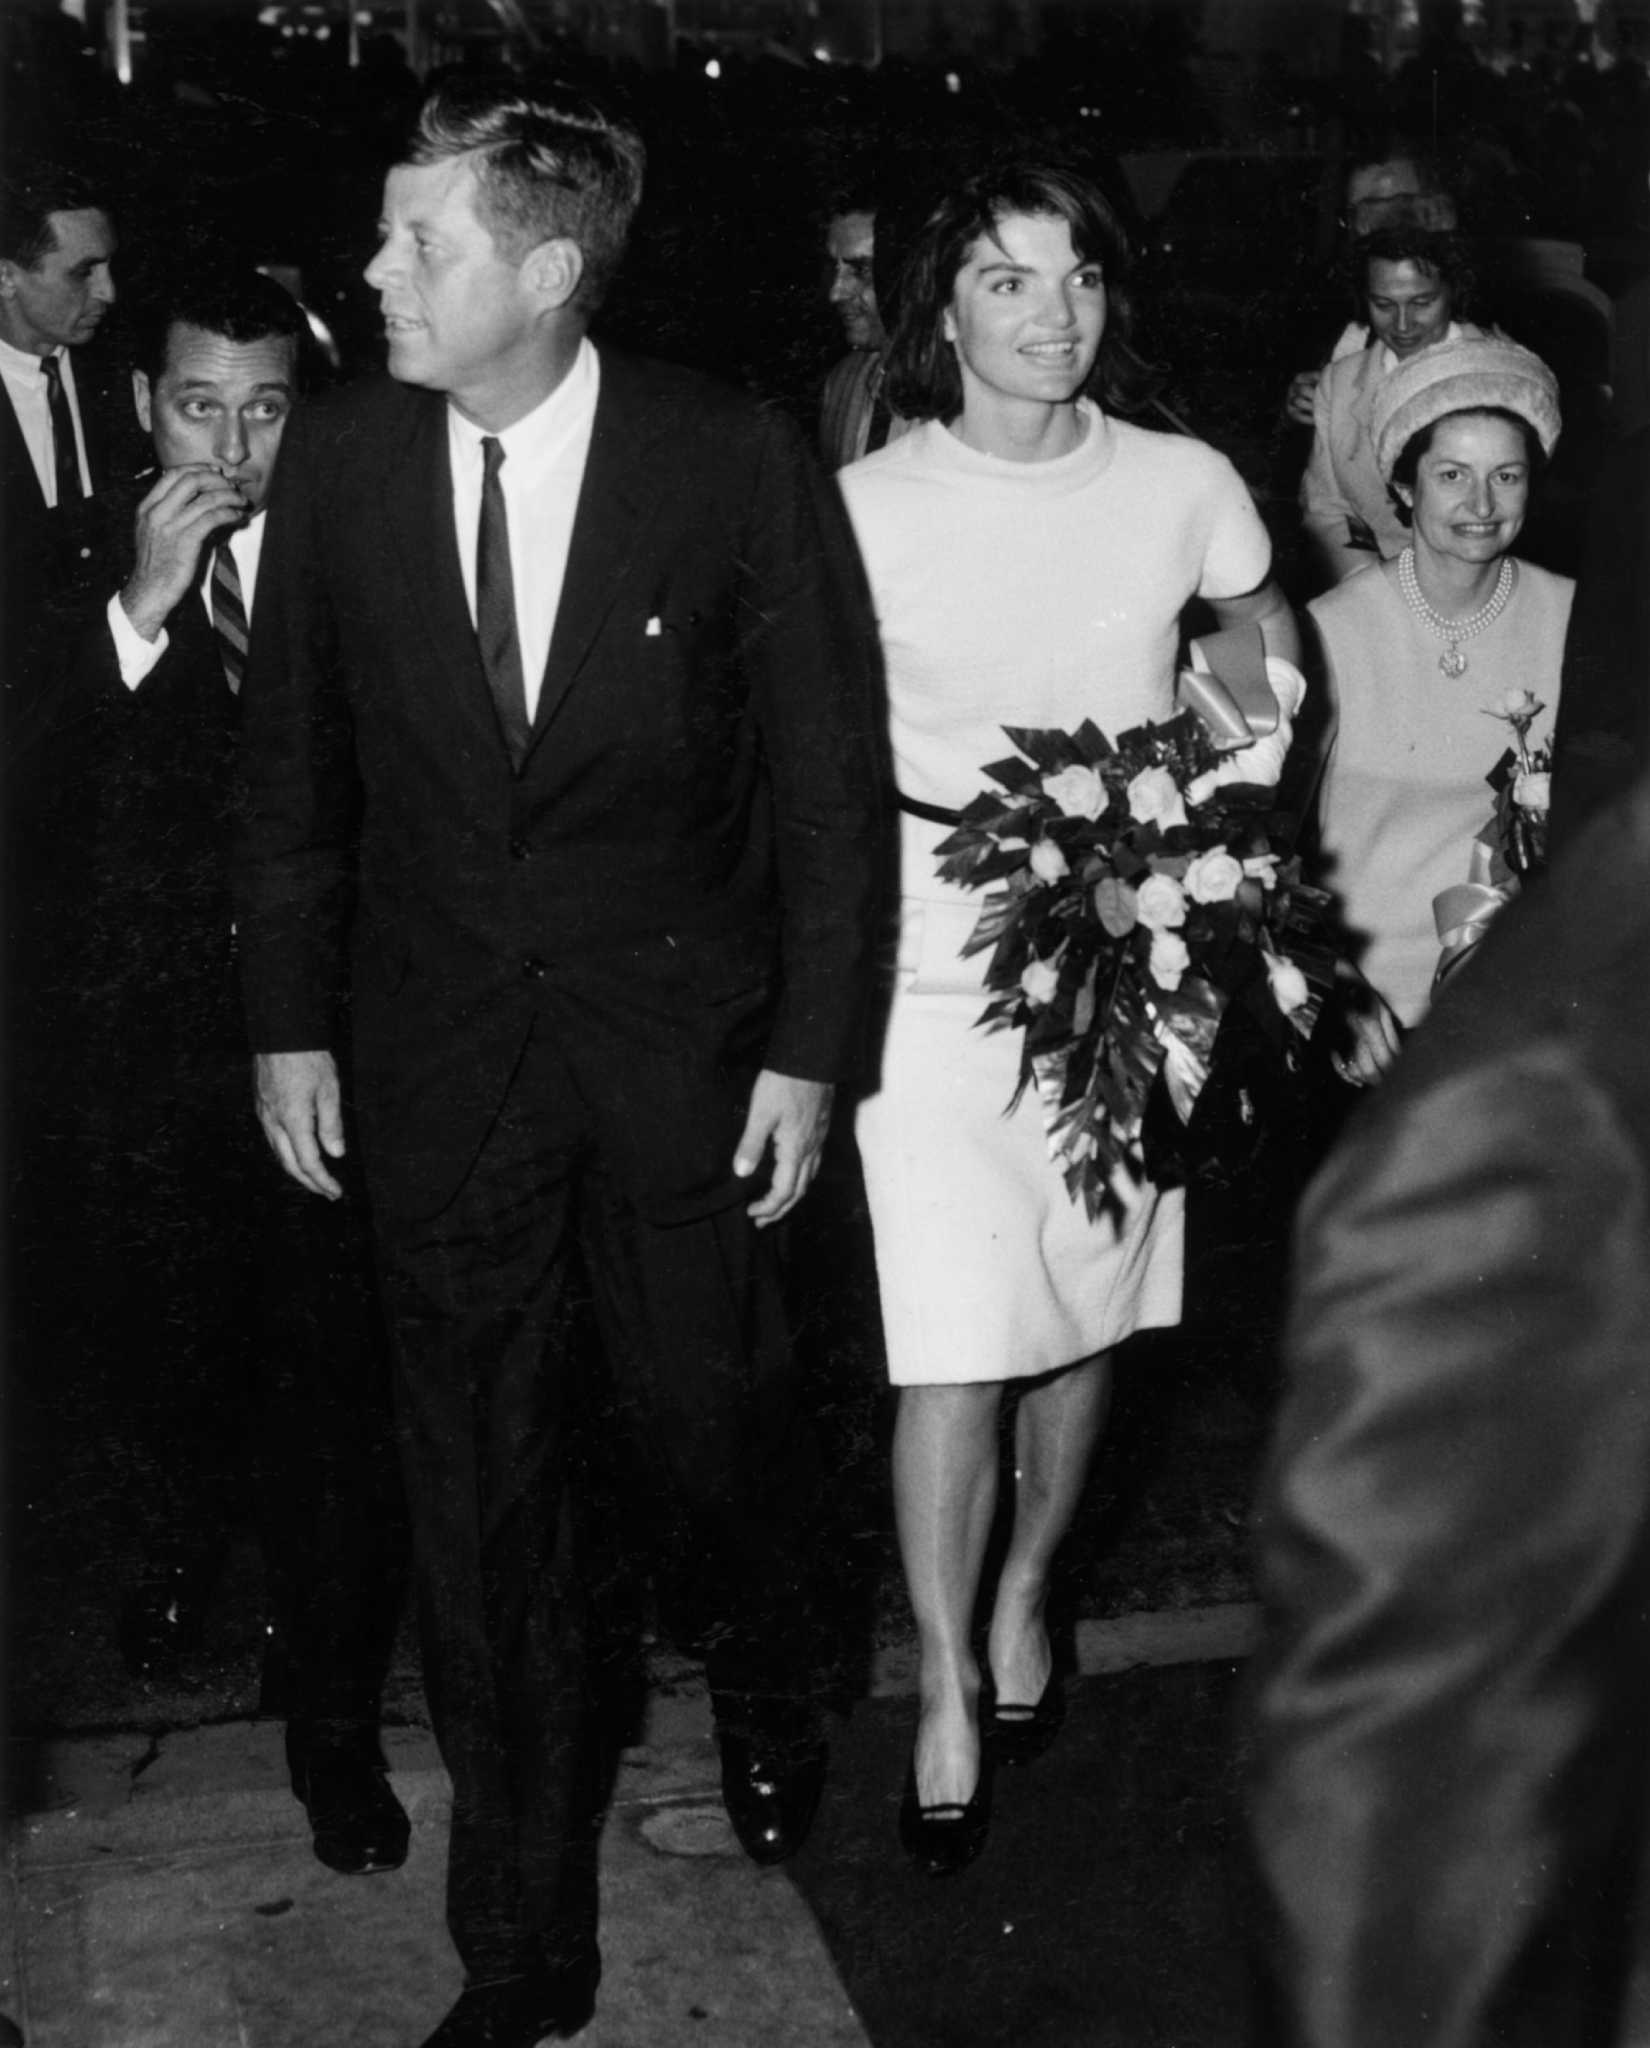 56 years later, see how JFK spent the night before his assassination in Houston